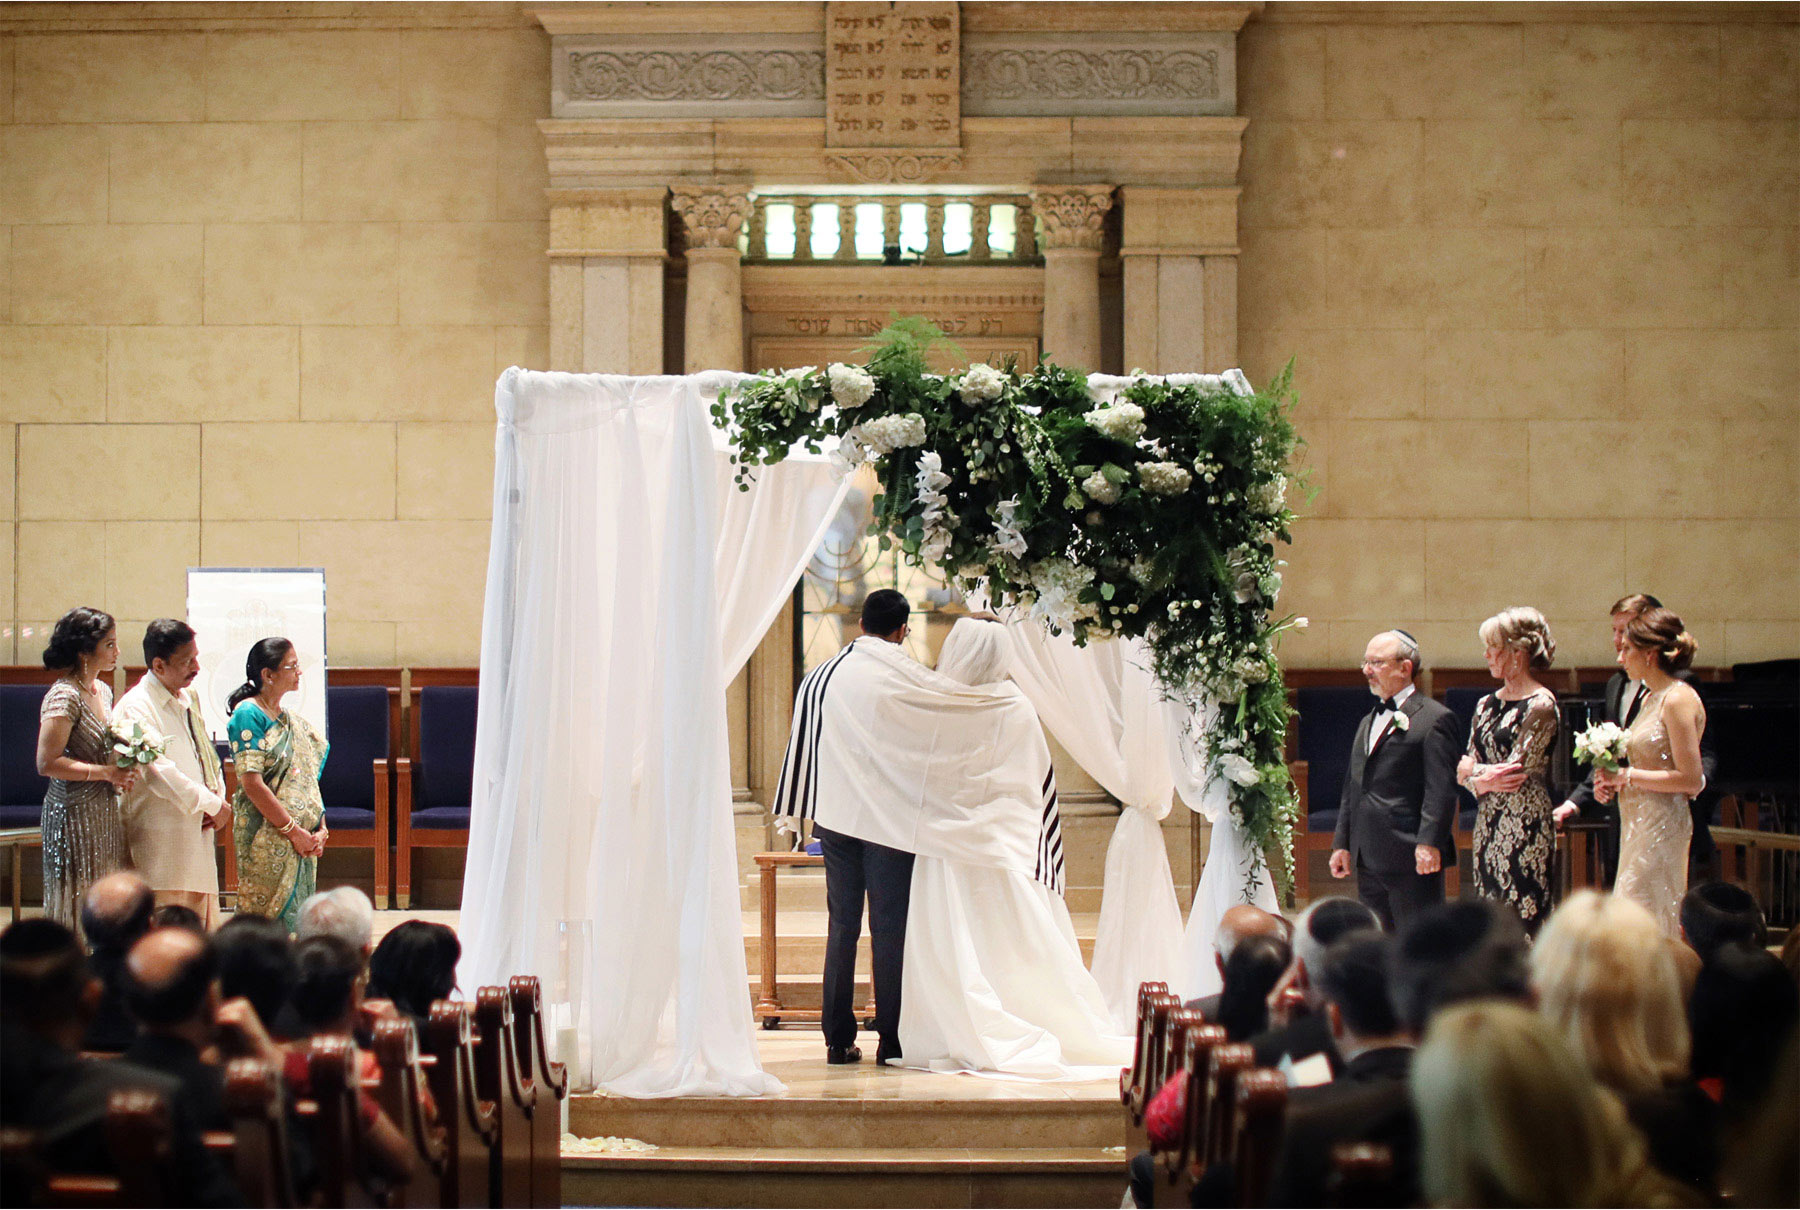 14-Minneapolis-Minnesota-Wedding-Photographer-by-Andrew-Vick-Photography--Spring-Temple-Israel-Synagogue-Ceremony-Bride-Groom-Family-Chuppah-Rachel-and-Venu.jpg